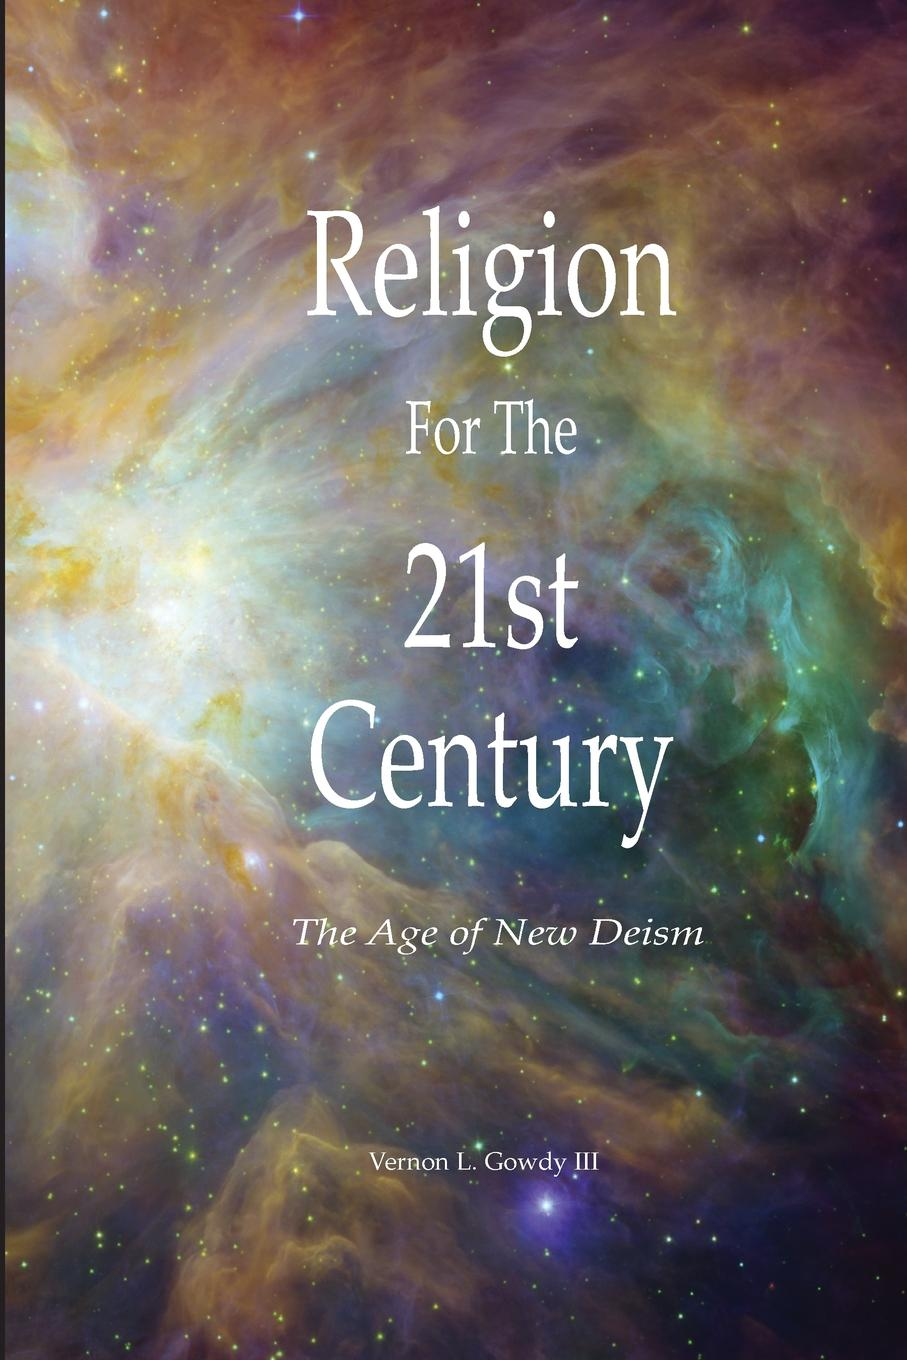 Vernon Gowdy III Religion For the 21st Century - The Age of New Deism bevan s brinkley i bajorek z cooper c 21st century workforces and workplaces the challenges and opportunities for future work practices and labour markets